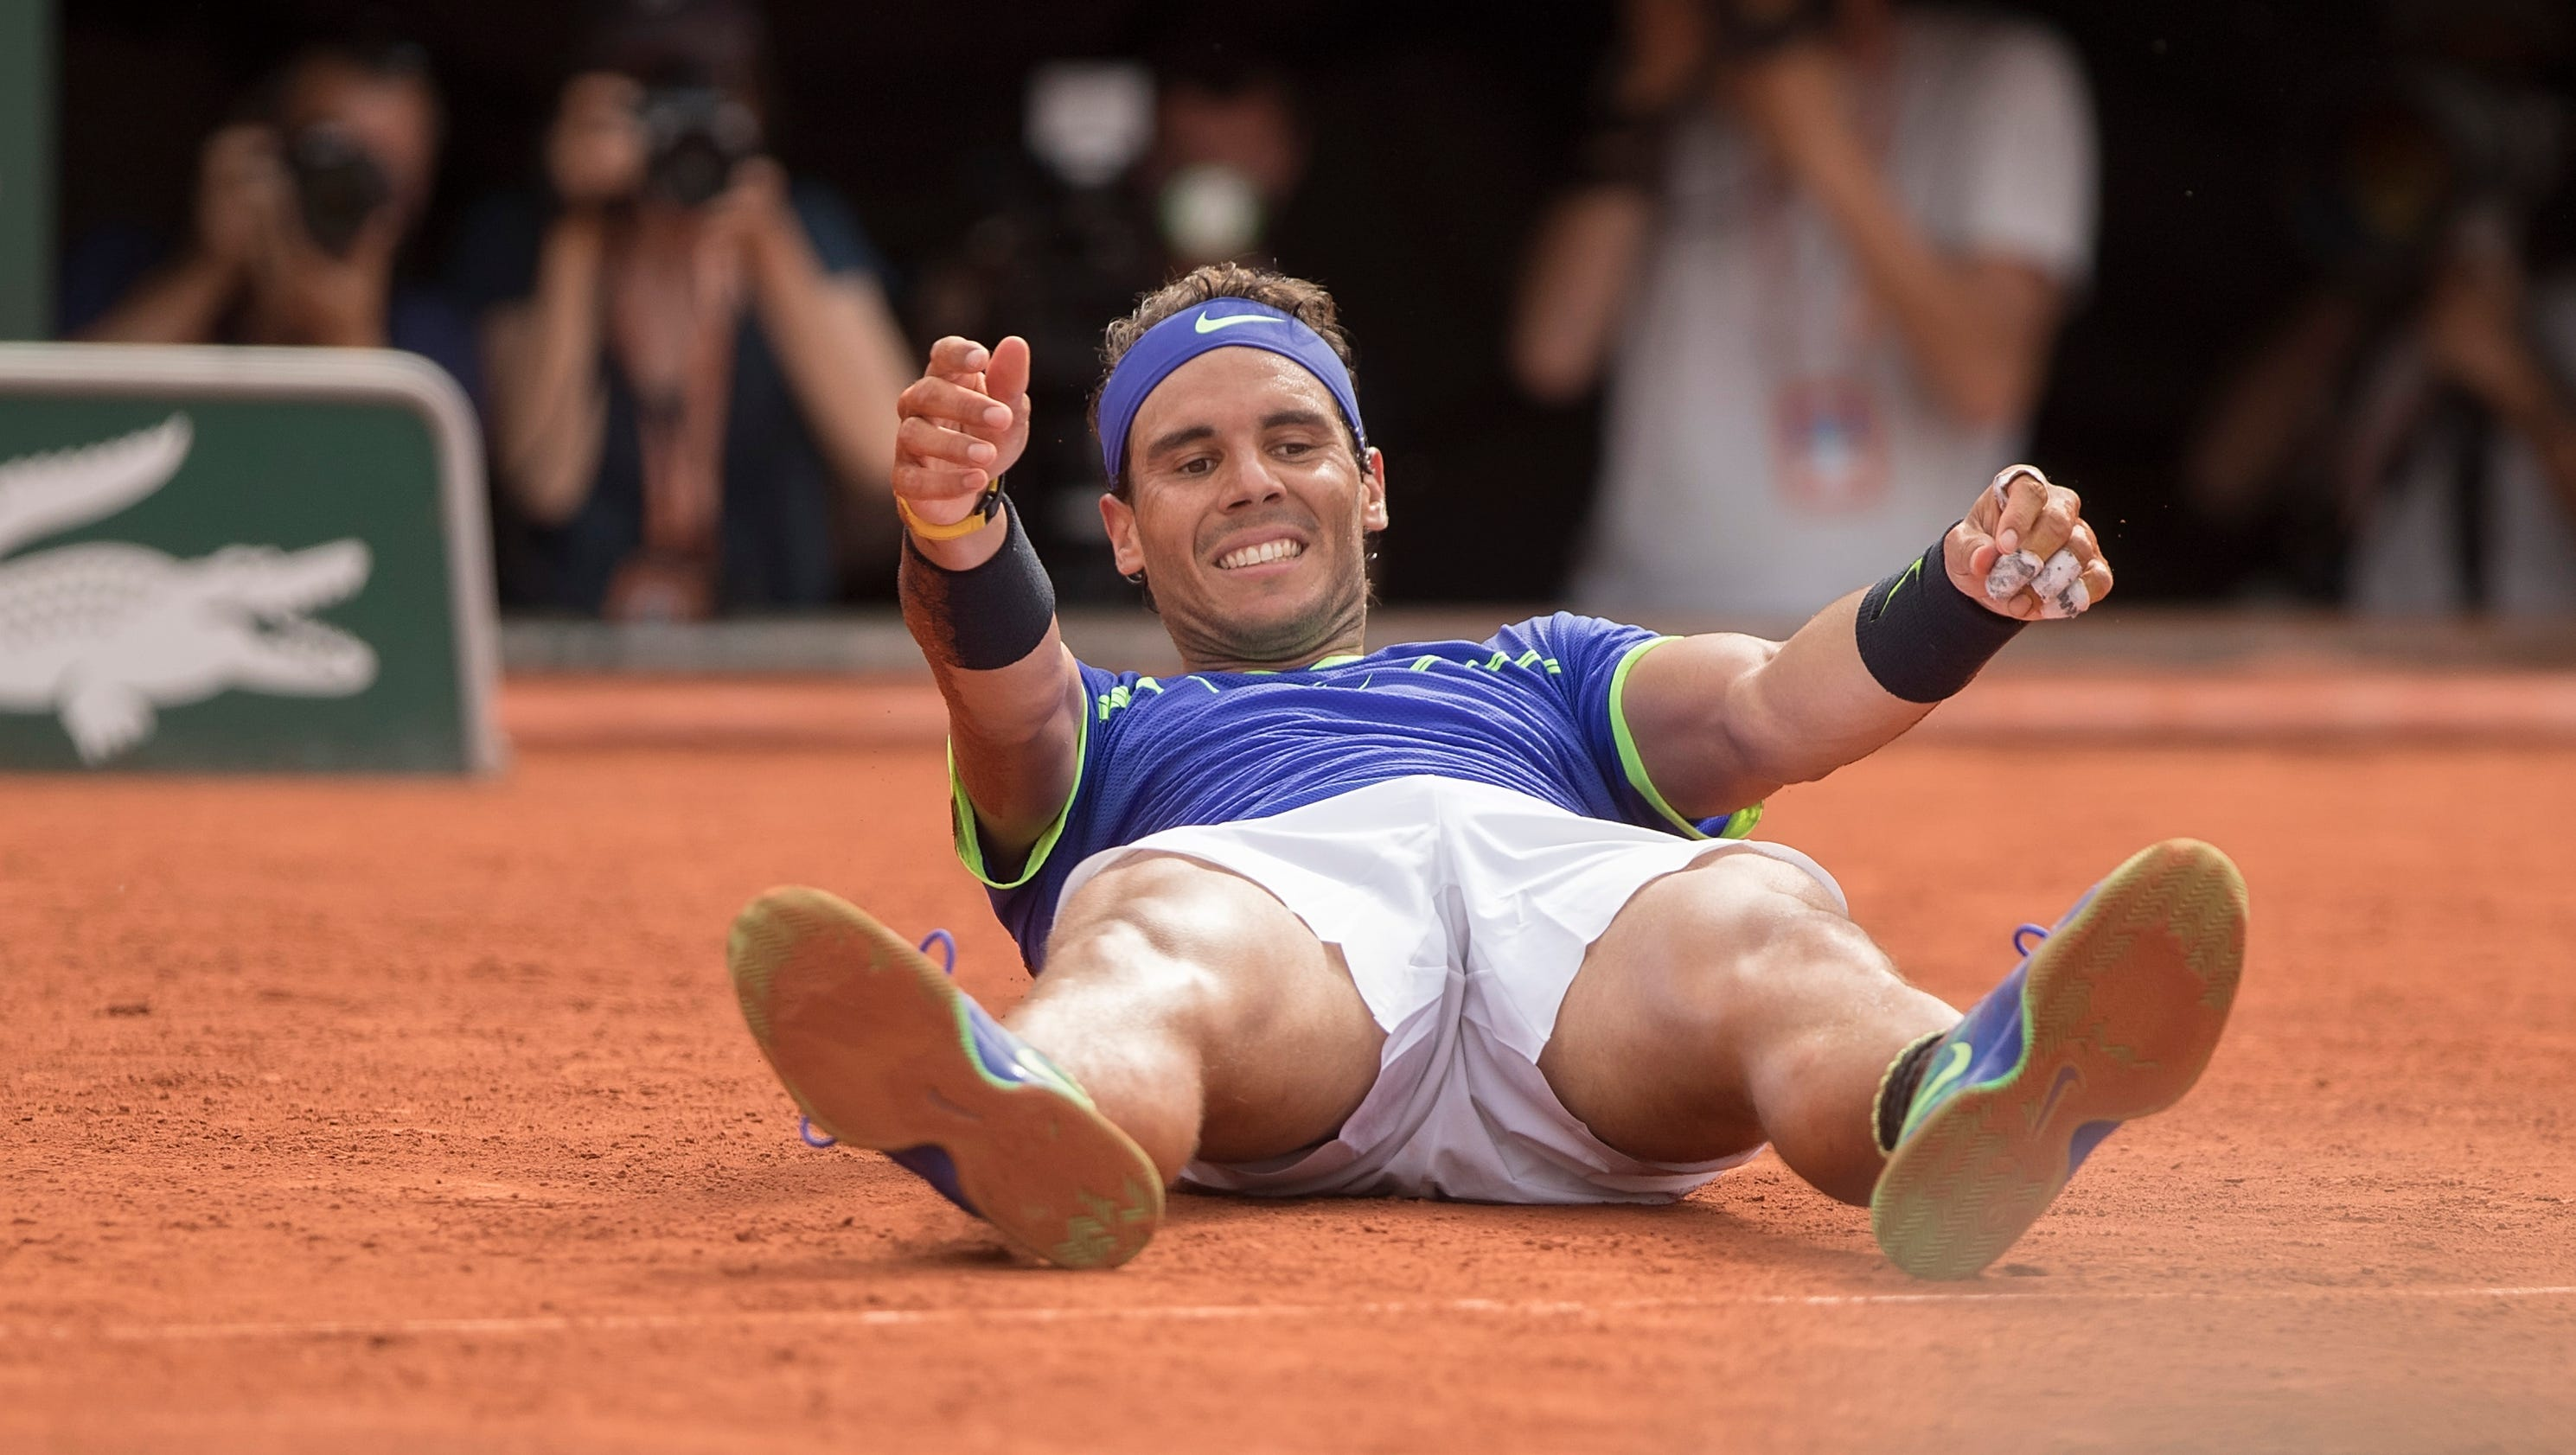 who is playing in the french open today